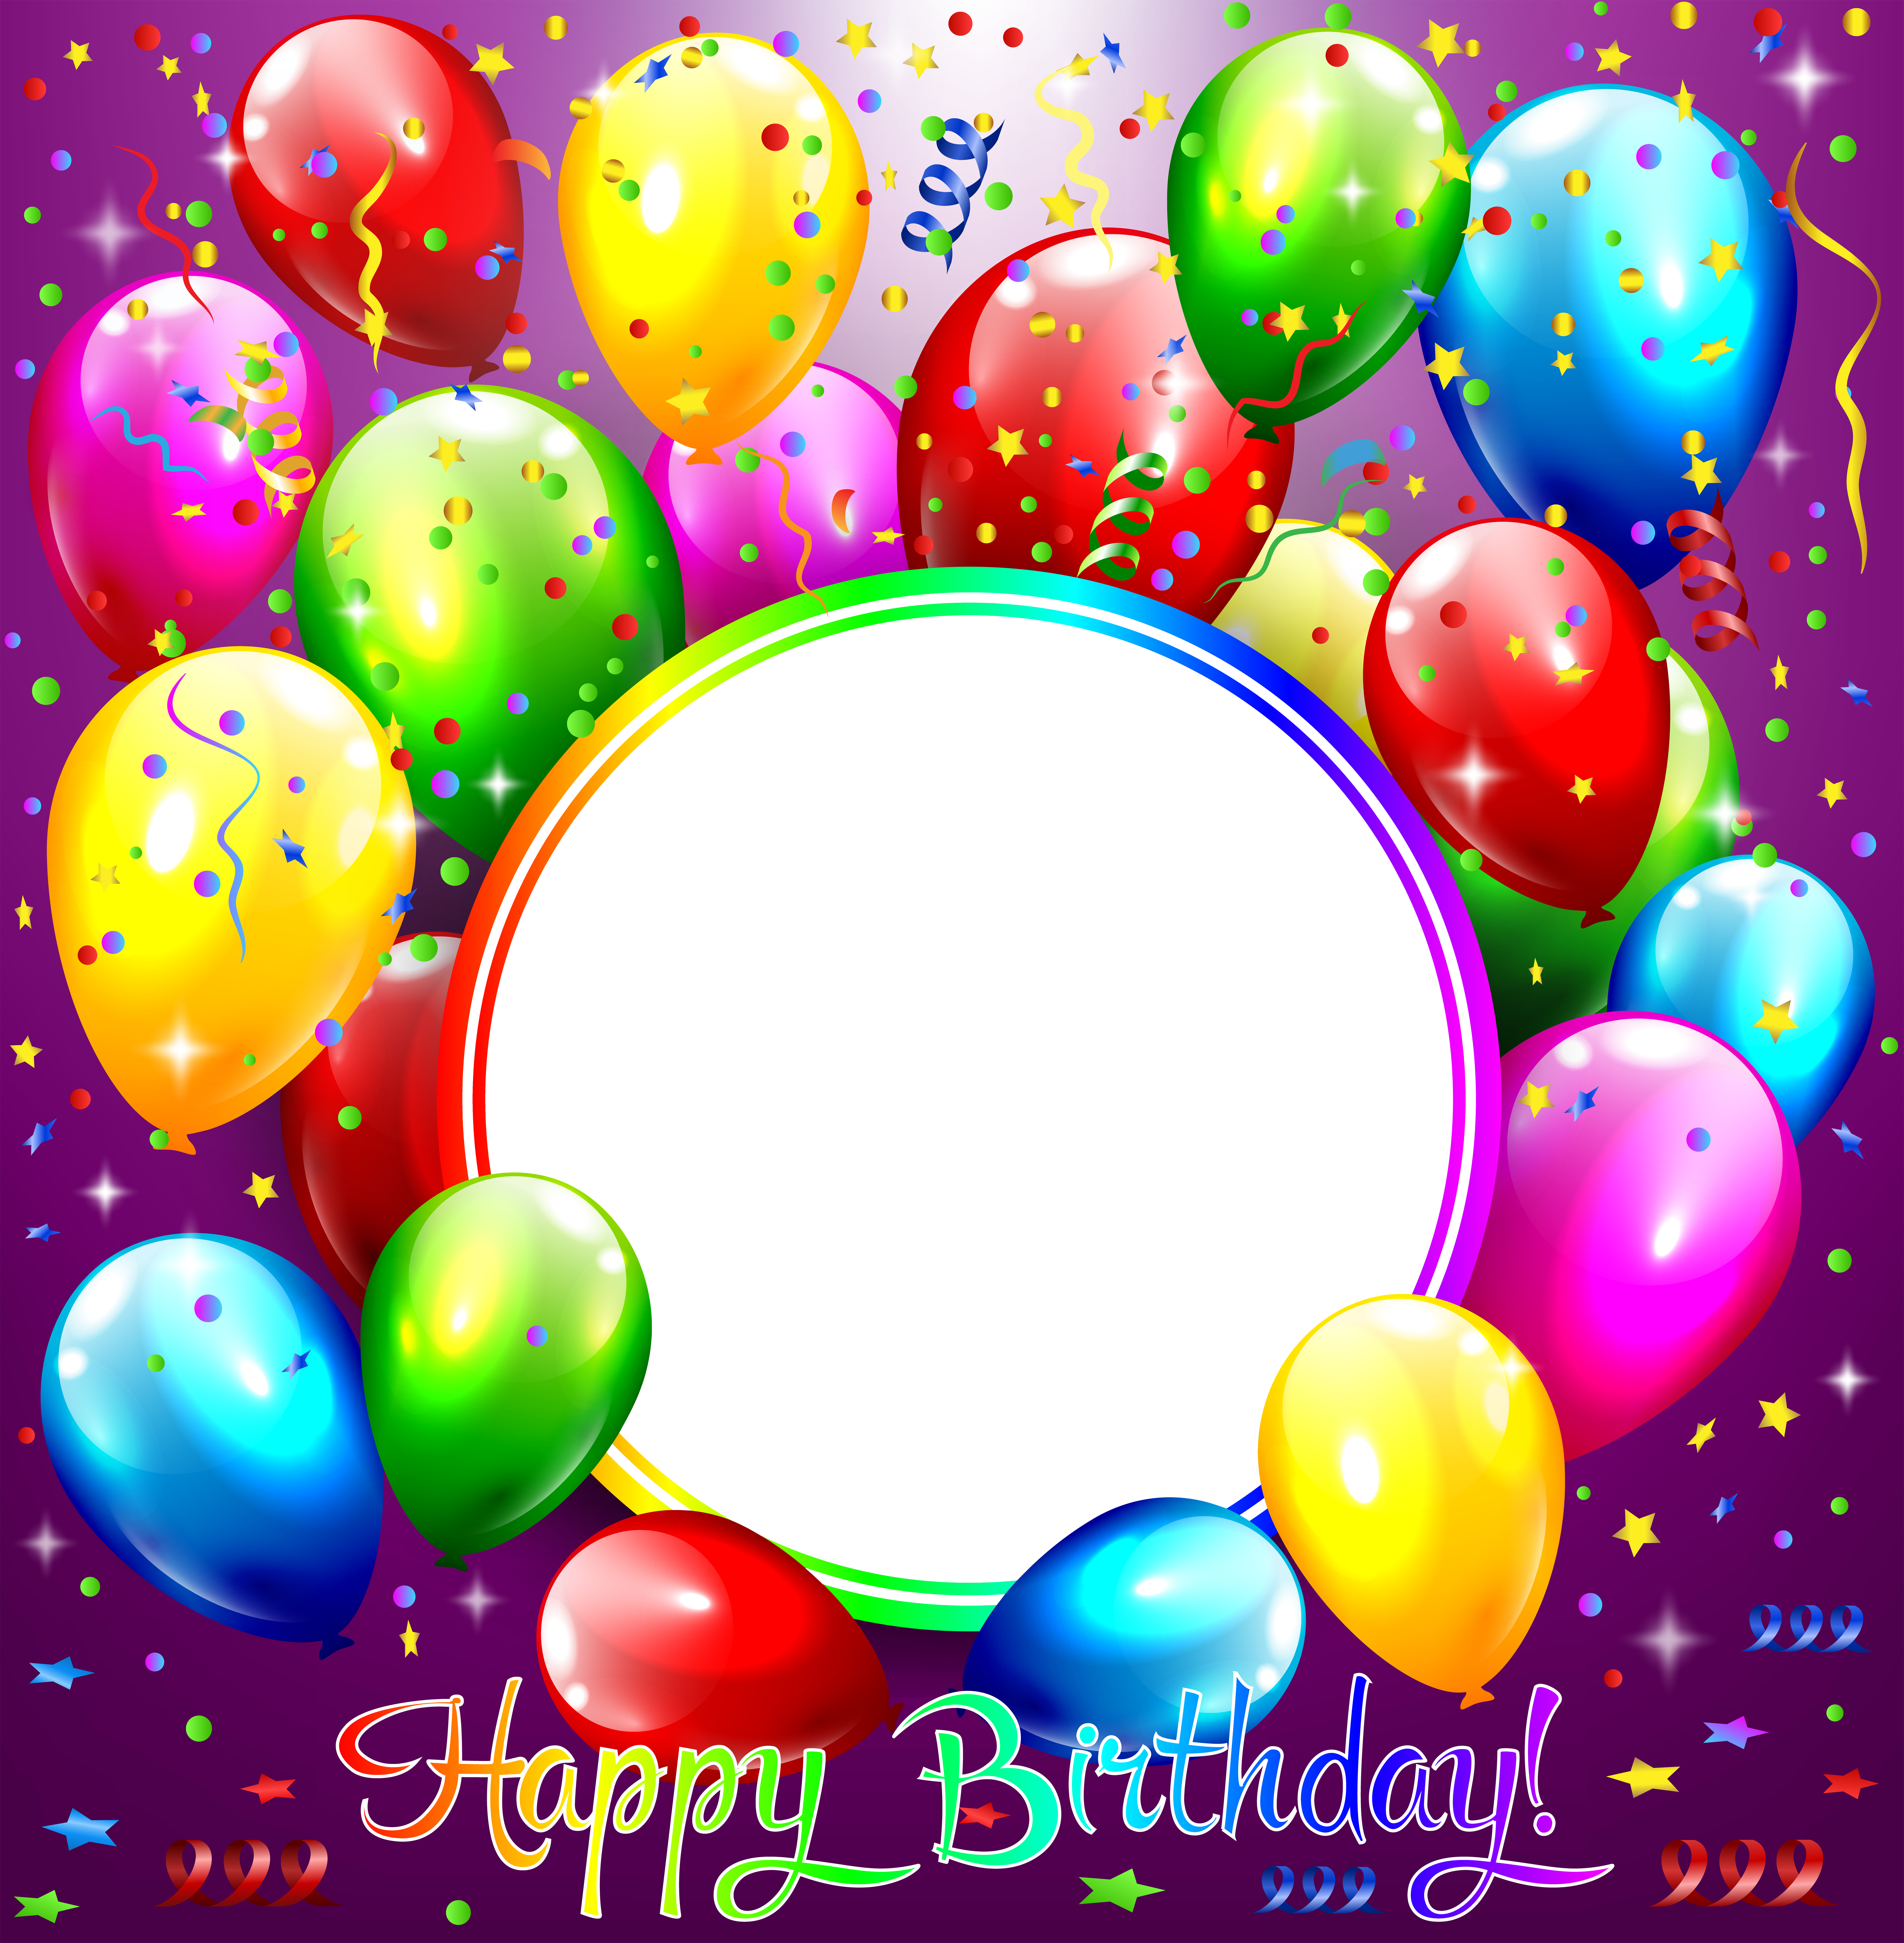 Happy Birthday Transparent Purple Frame Gallery Yopriceville High Quality Images And Tran Happy Birthday Frame Happy Birthday Png Happy Birthday Wallpaper